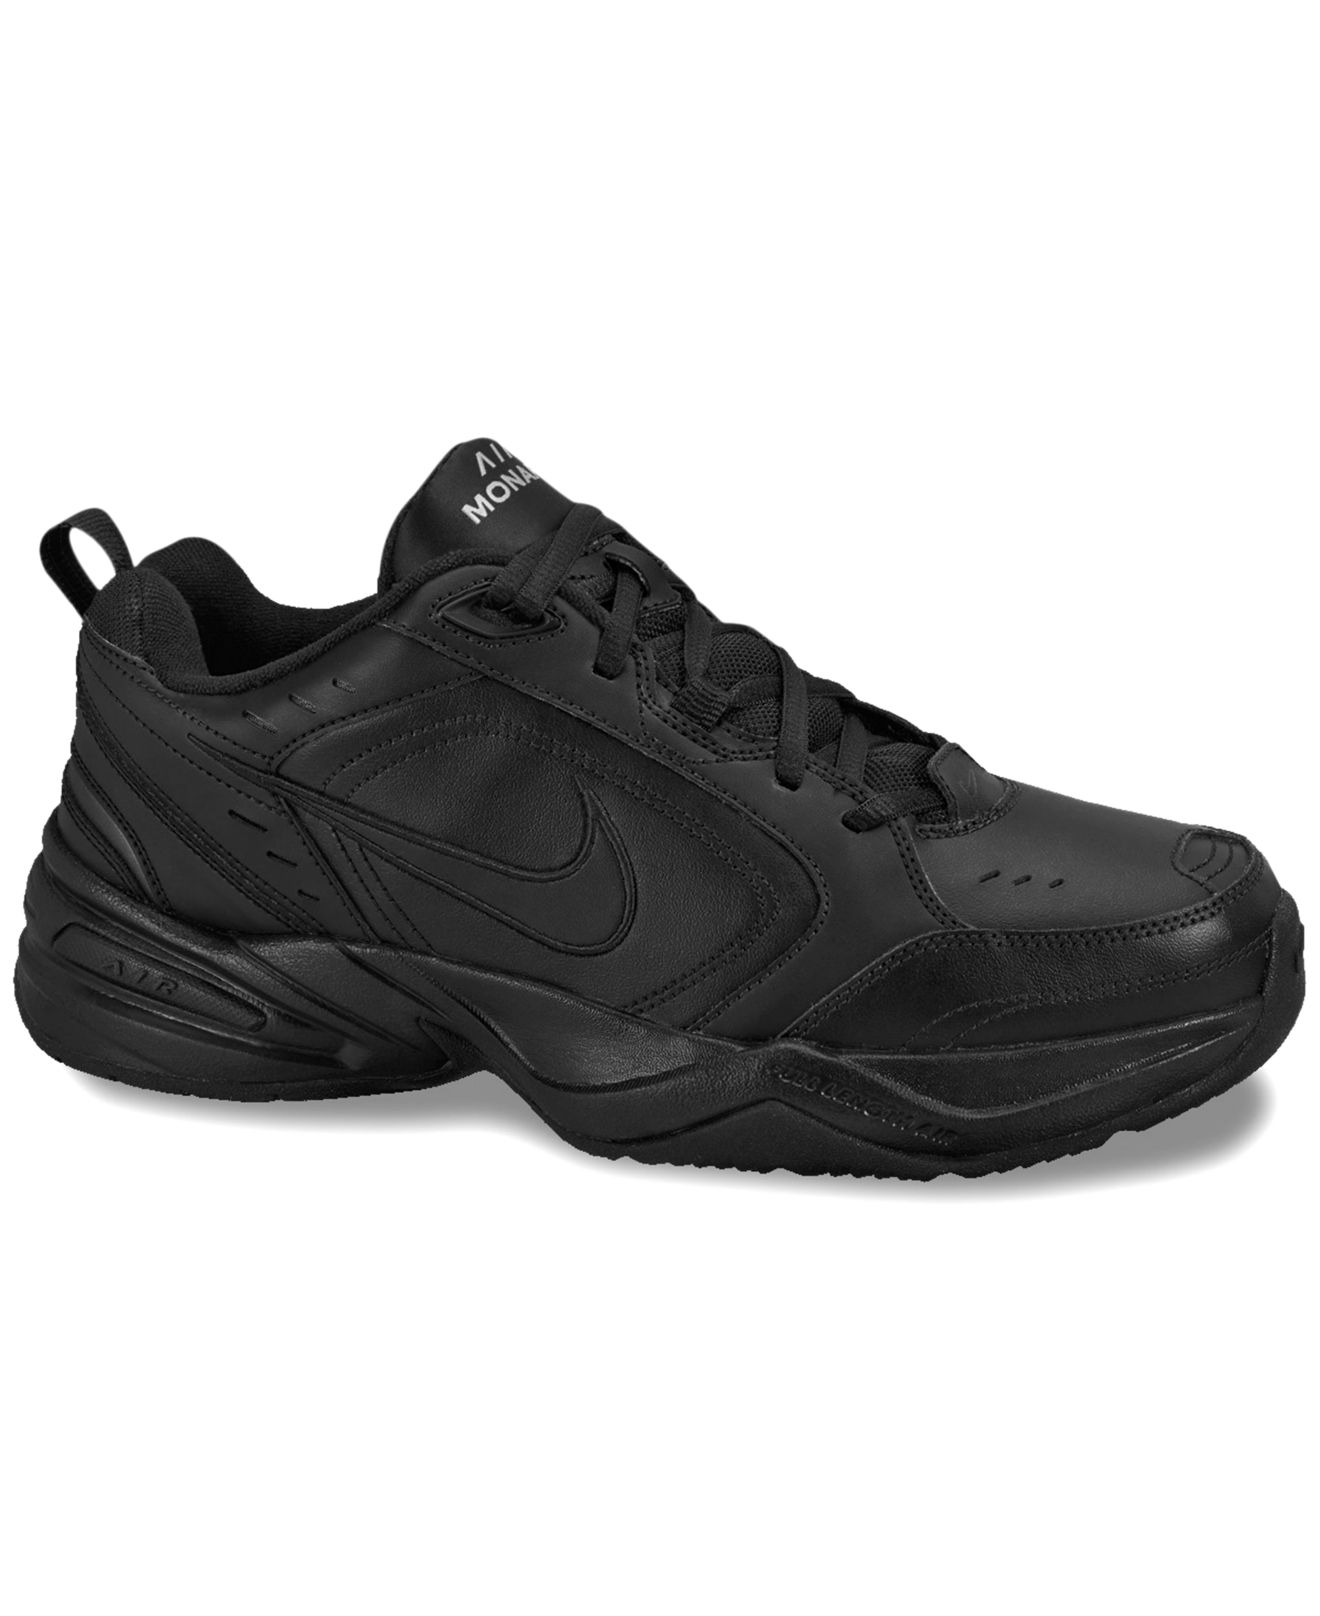 Finish Line Nike Tennis Shoes